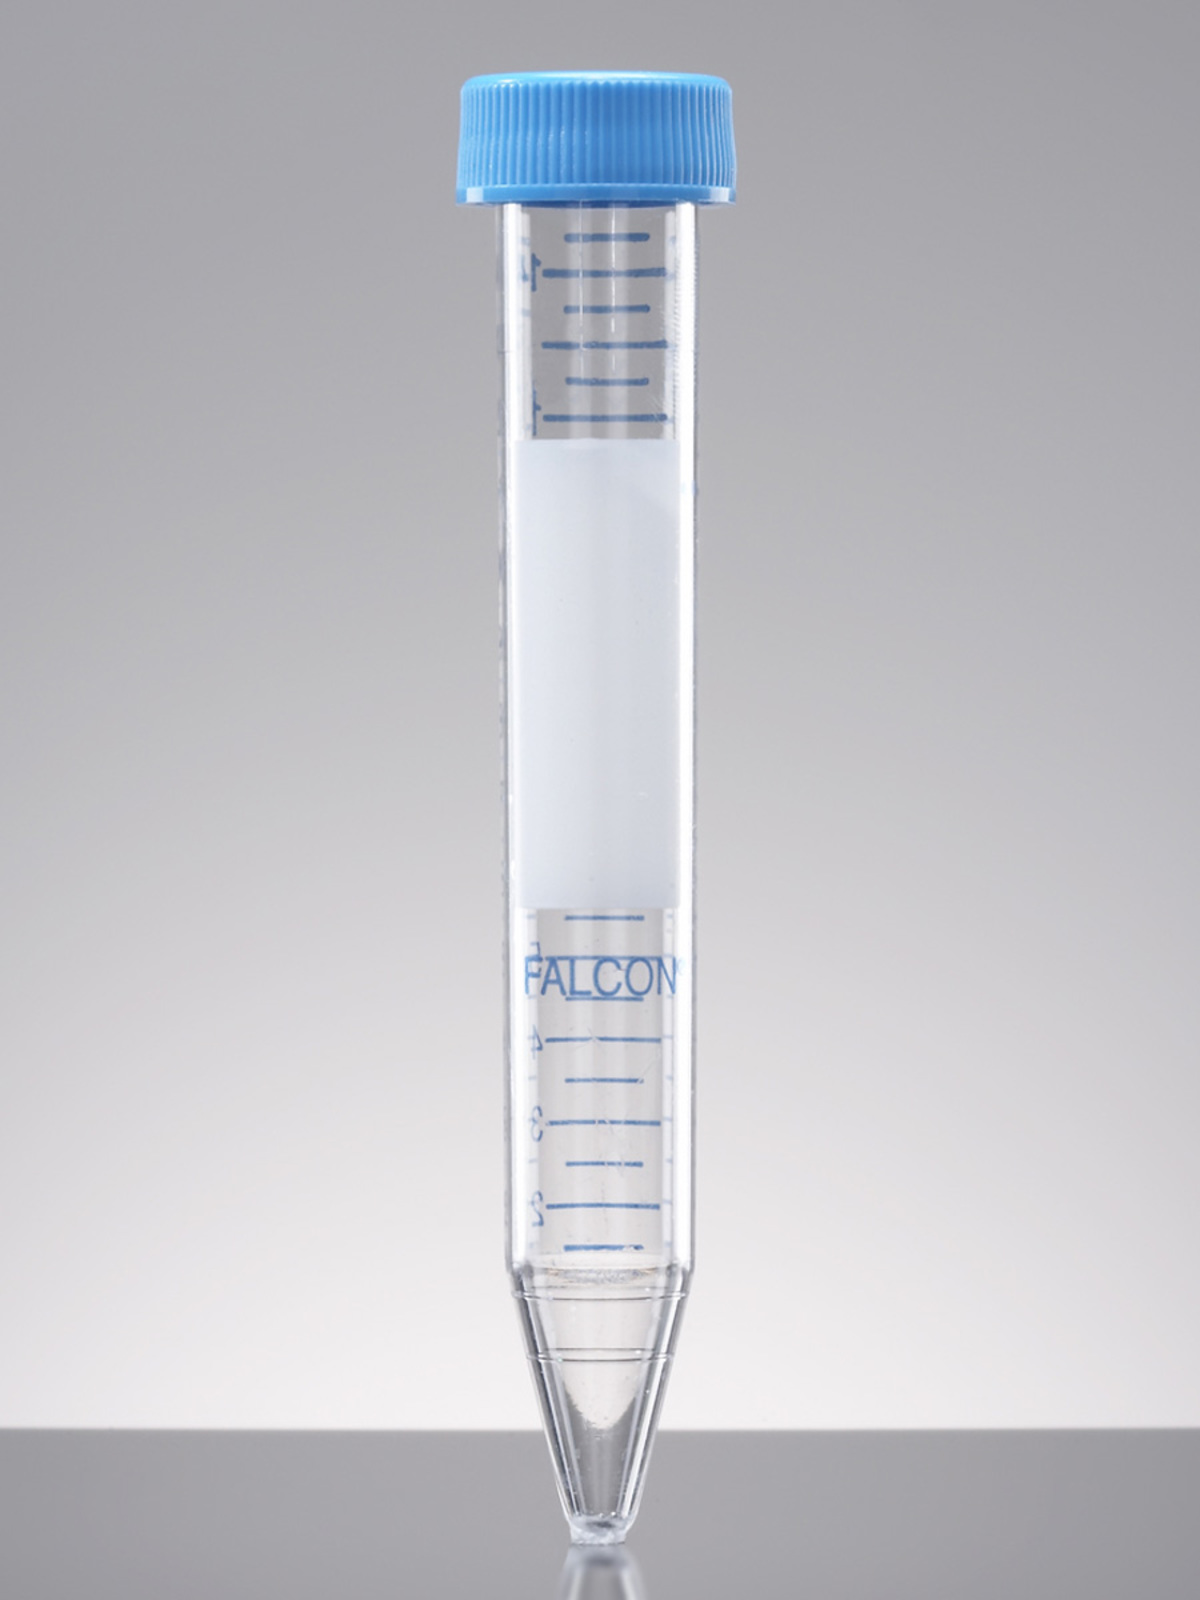 Falcon® 15 mL Polystyrene Centrifuge Tube, Conical Bottom, with Dome Seal Screw Cap, Sterile, 50/Rack, 500/Case